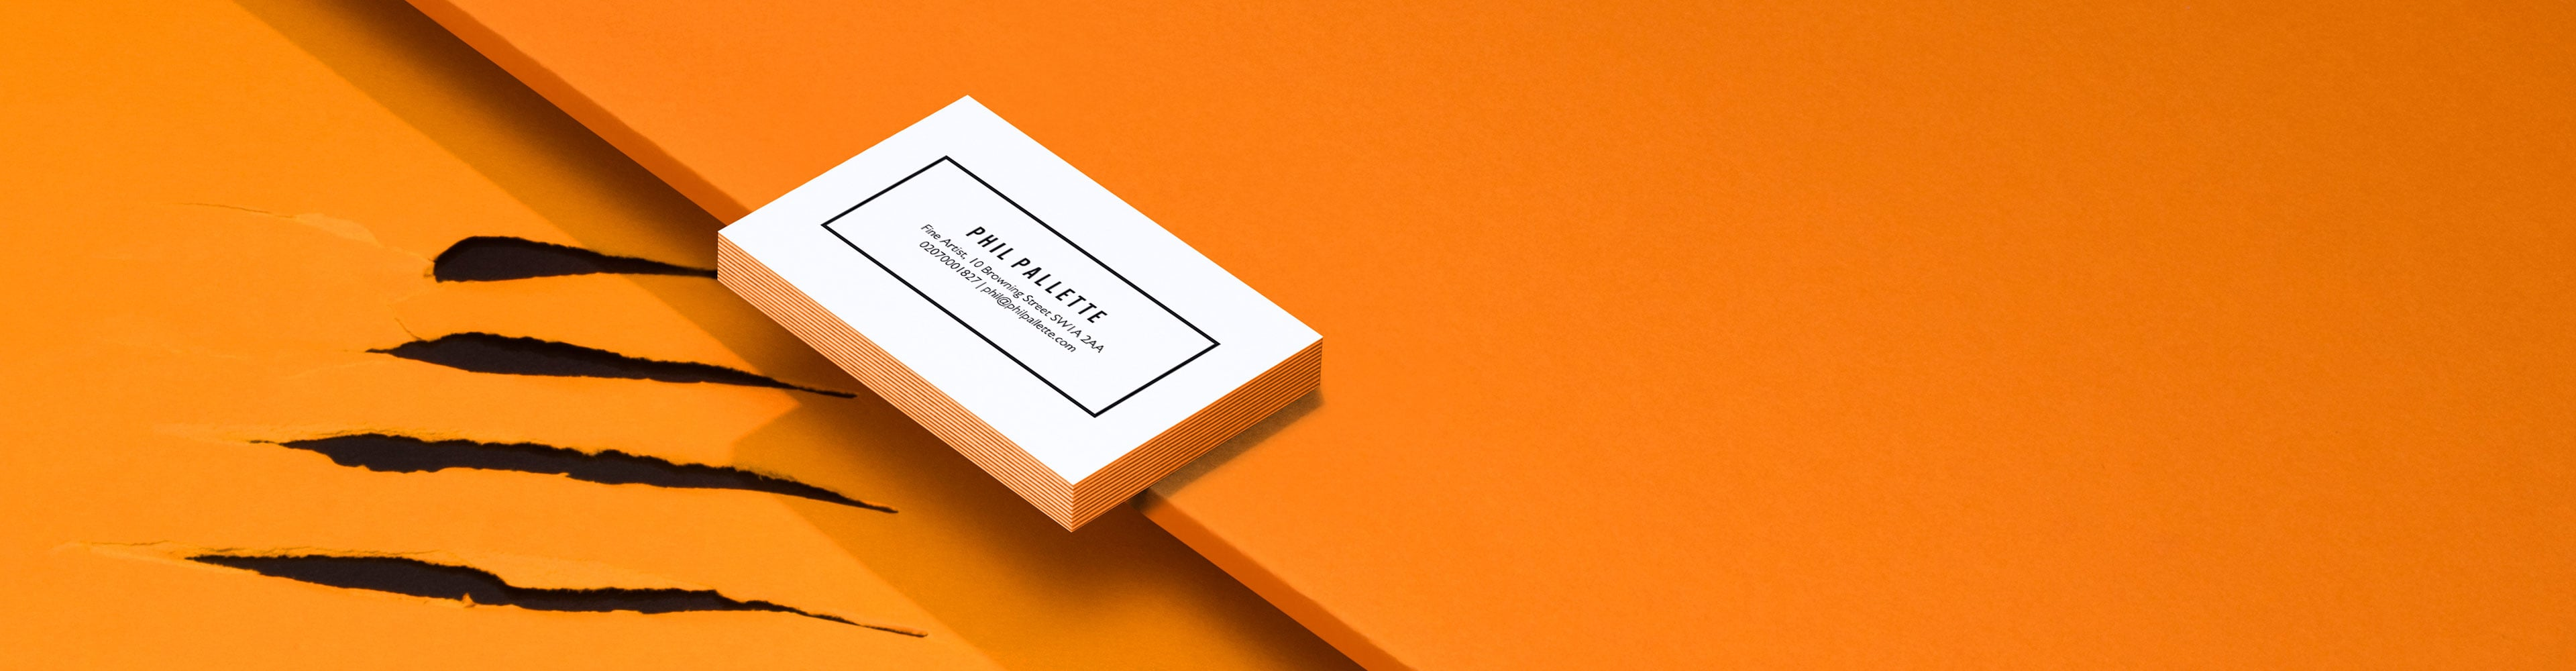 Lux Business Cards Images - Business Card Template